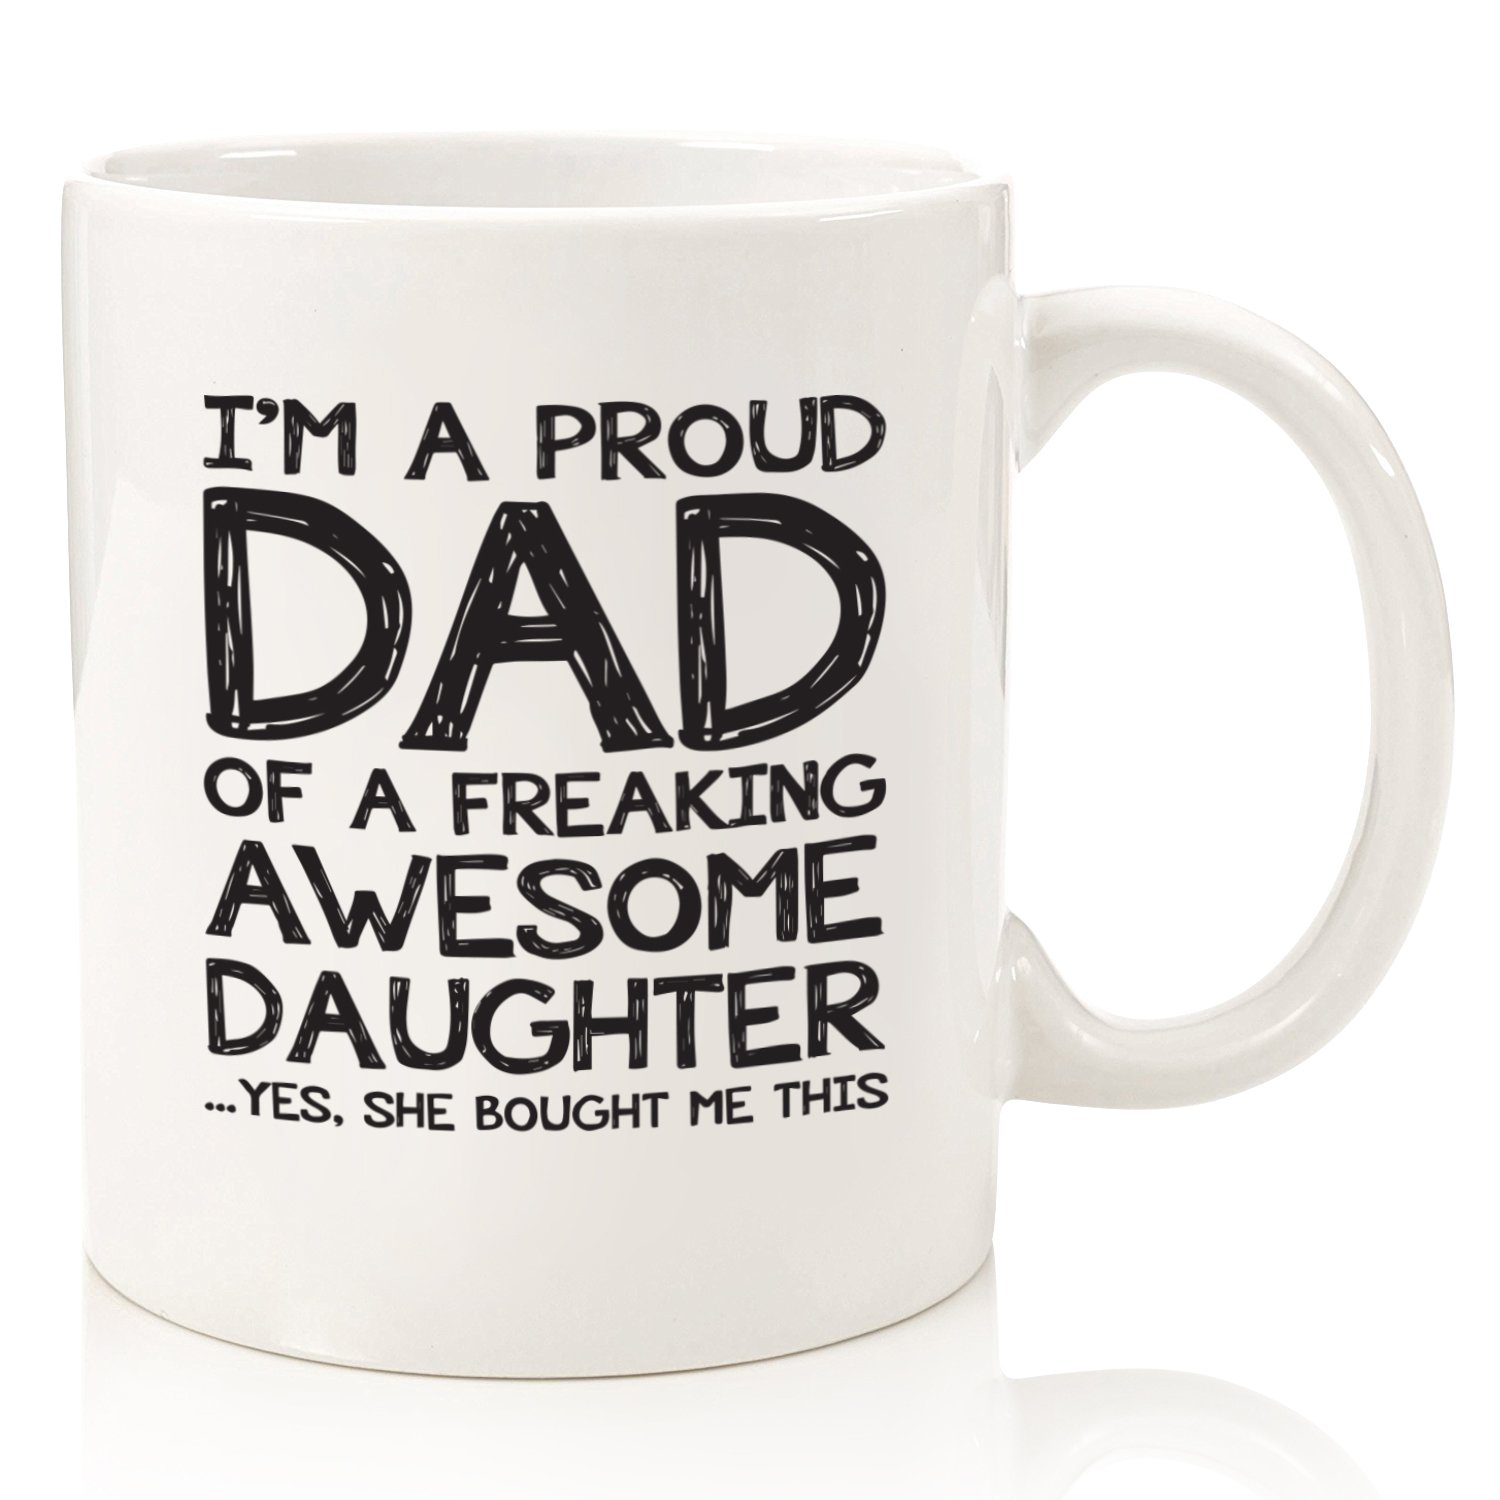 Dad Christmas Gifts From Daughter: Proud Dad Of A Freaking Awesome Daughter Funny Mug Best